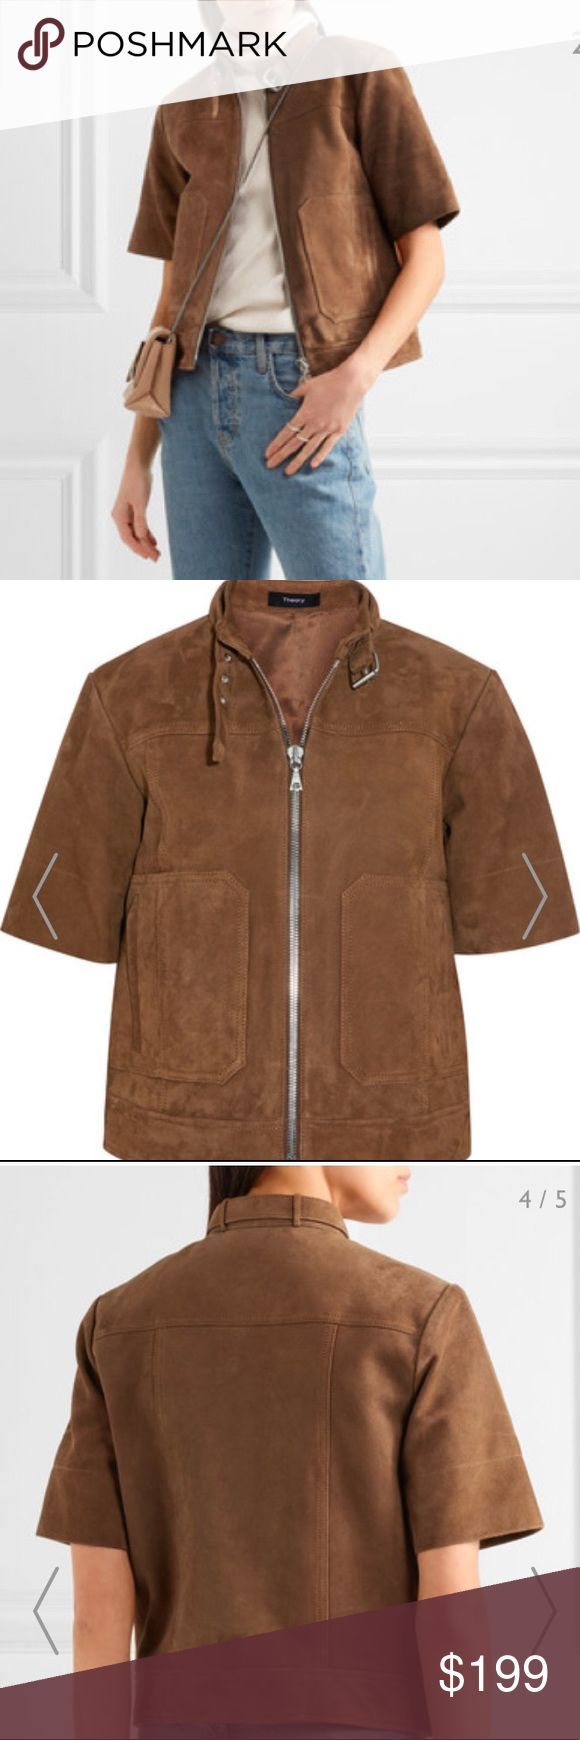 """NWT Theory Lavzinie 💯% Suede Short Sleeve Jacket NWT. Zippers still covered in tissue. Sold out at Bloomingdales and Net-a-Porter and currently $499 at Nordstrom Rack! Online description: """"Theory's 'Lavzinie' jacket is made from butter-soft suede. This moto-inspired design is detailed with a buckled collar, oversized pockets and wide sleeves. Wear yours with slim-fit denim. - Tan suede (Lamb) - Two-way zip fastening through front - 100% suede; lining: 100% rayon - Specialist clean - Made in…"""